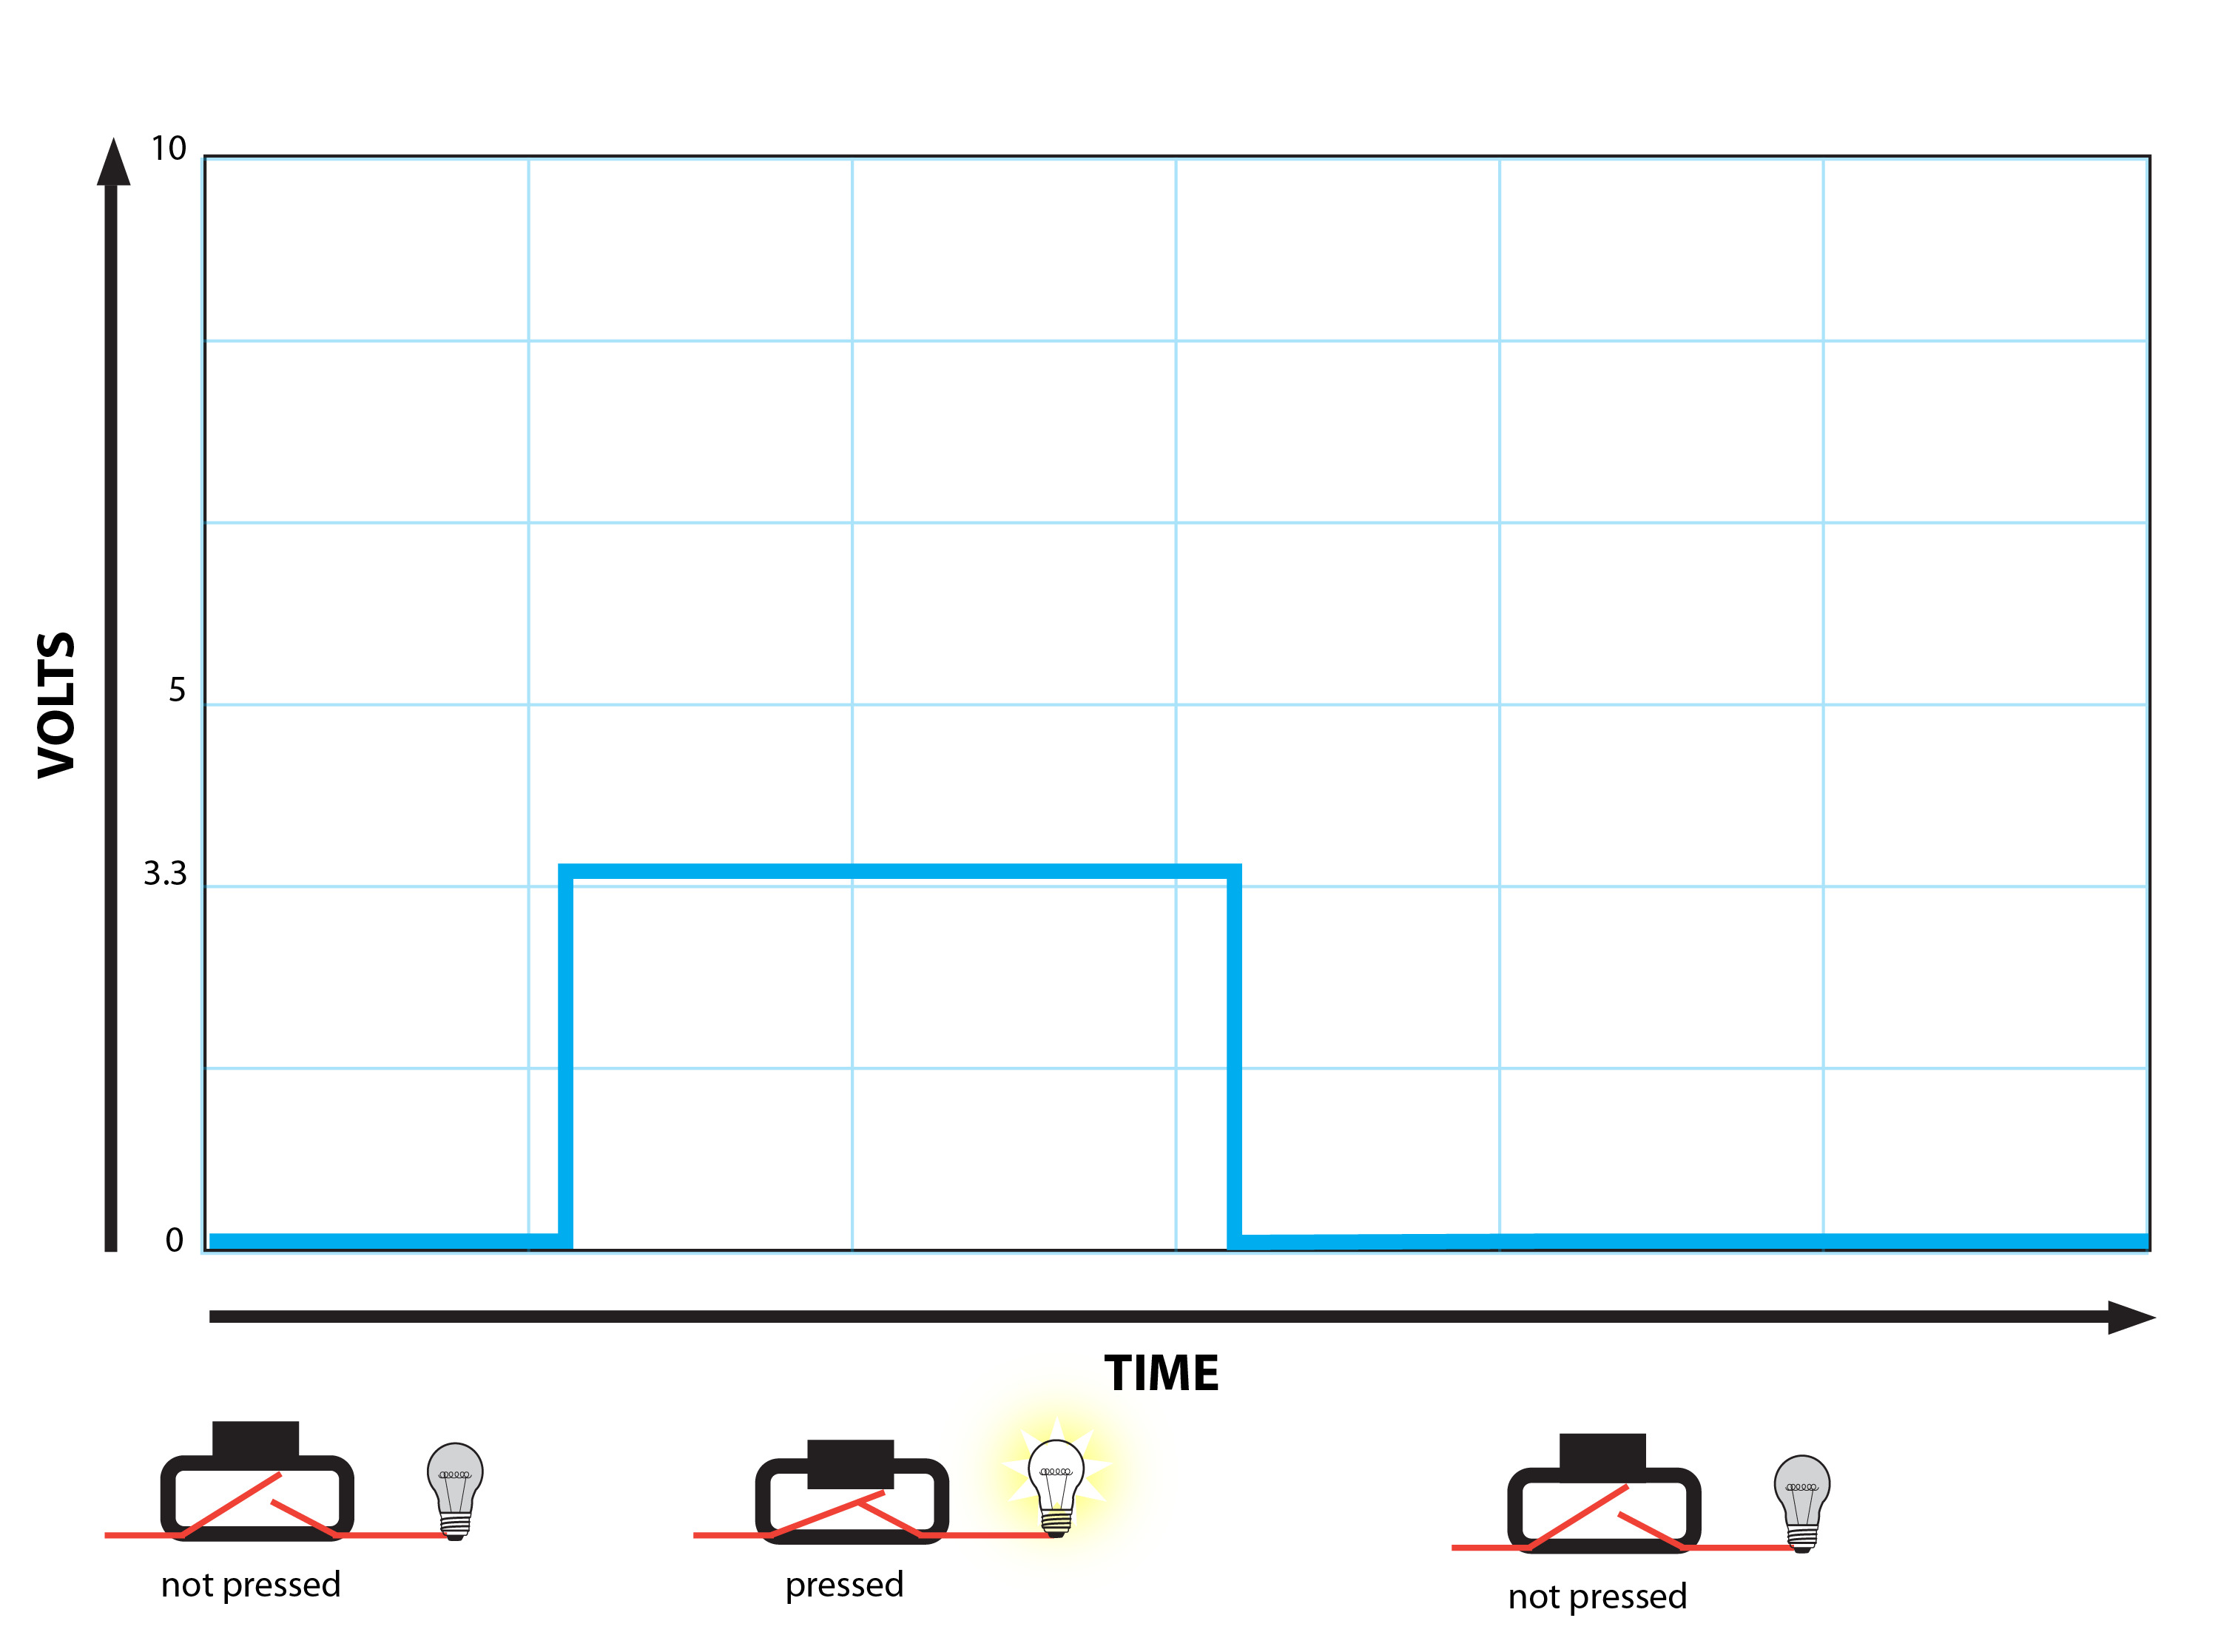 State And Events In Circuitpython Part 2 Exploring Switch Debounce Tutorial An Ideal Button Being Pressed Released Might Look Something Like This If We Graphed The Voltage Over Time